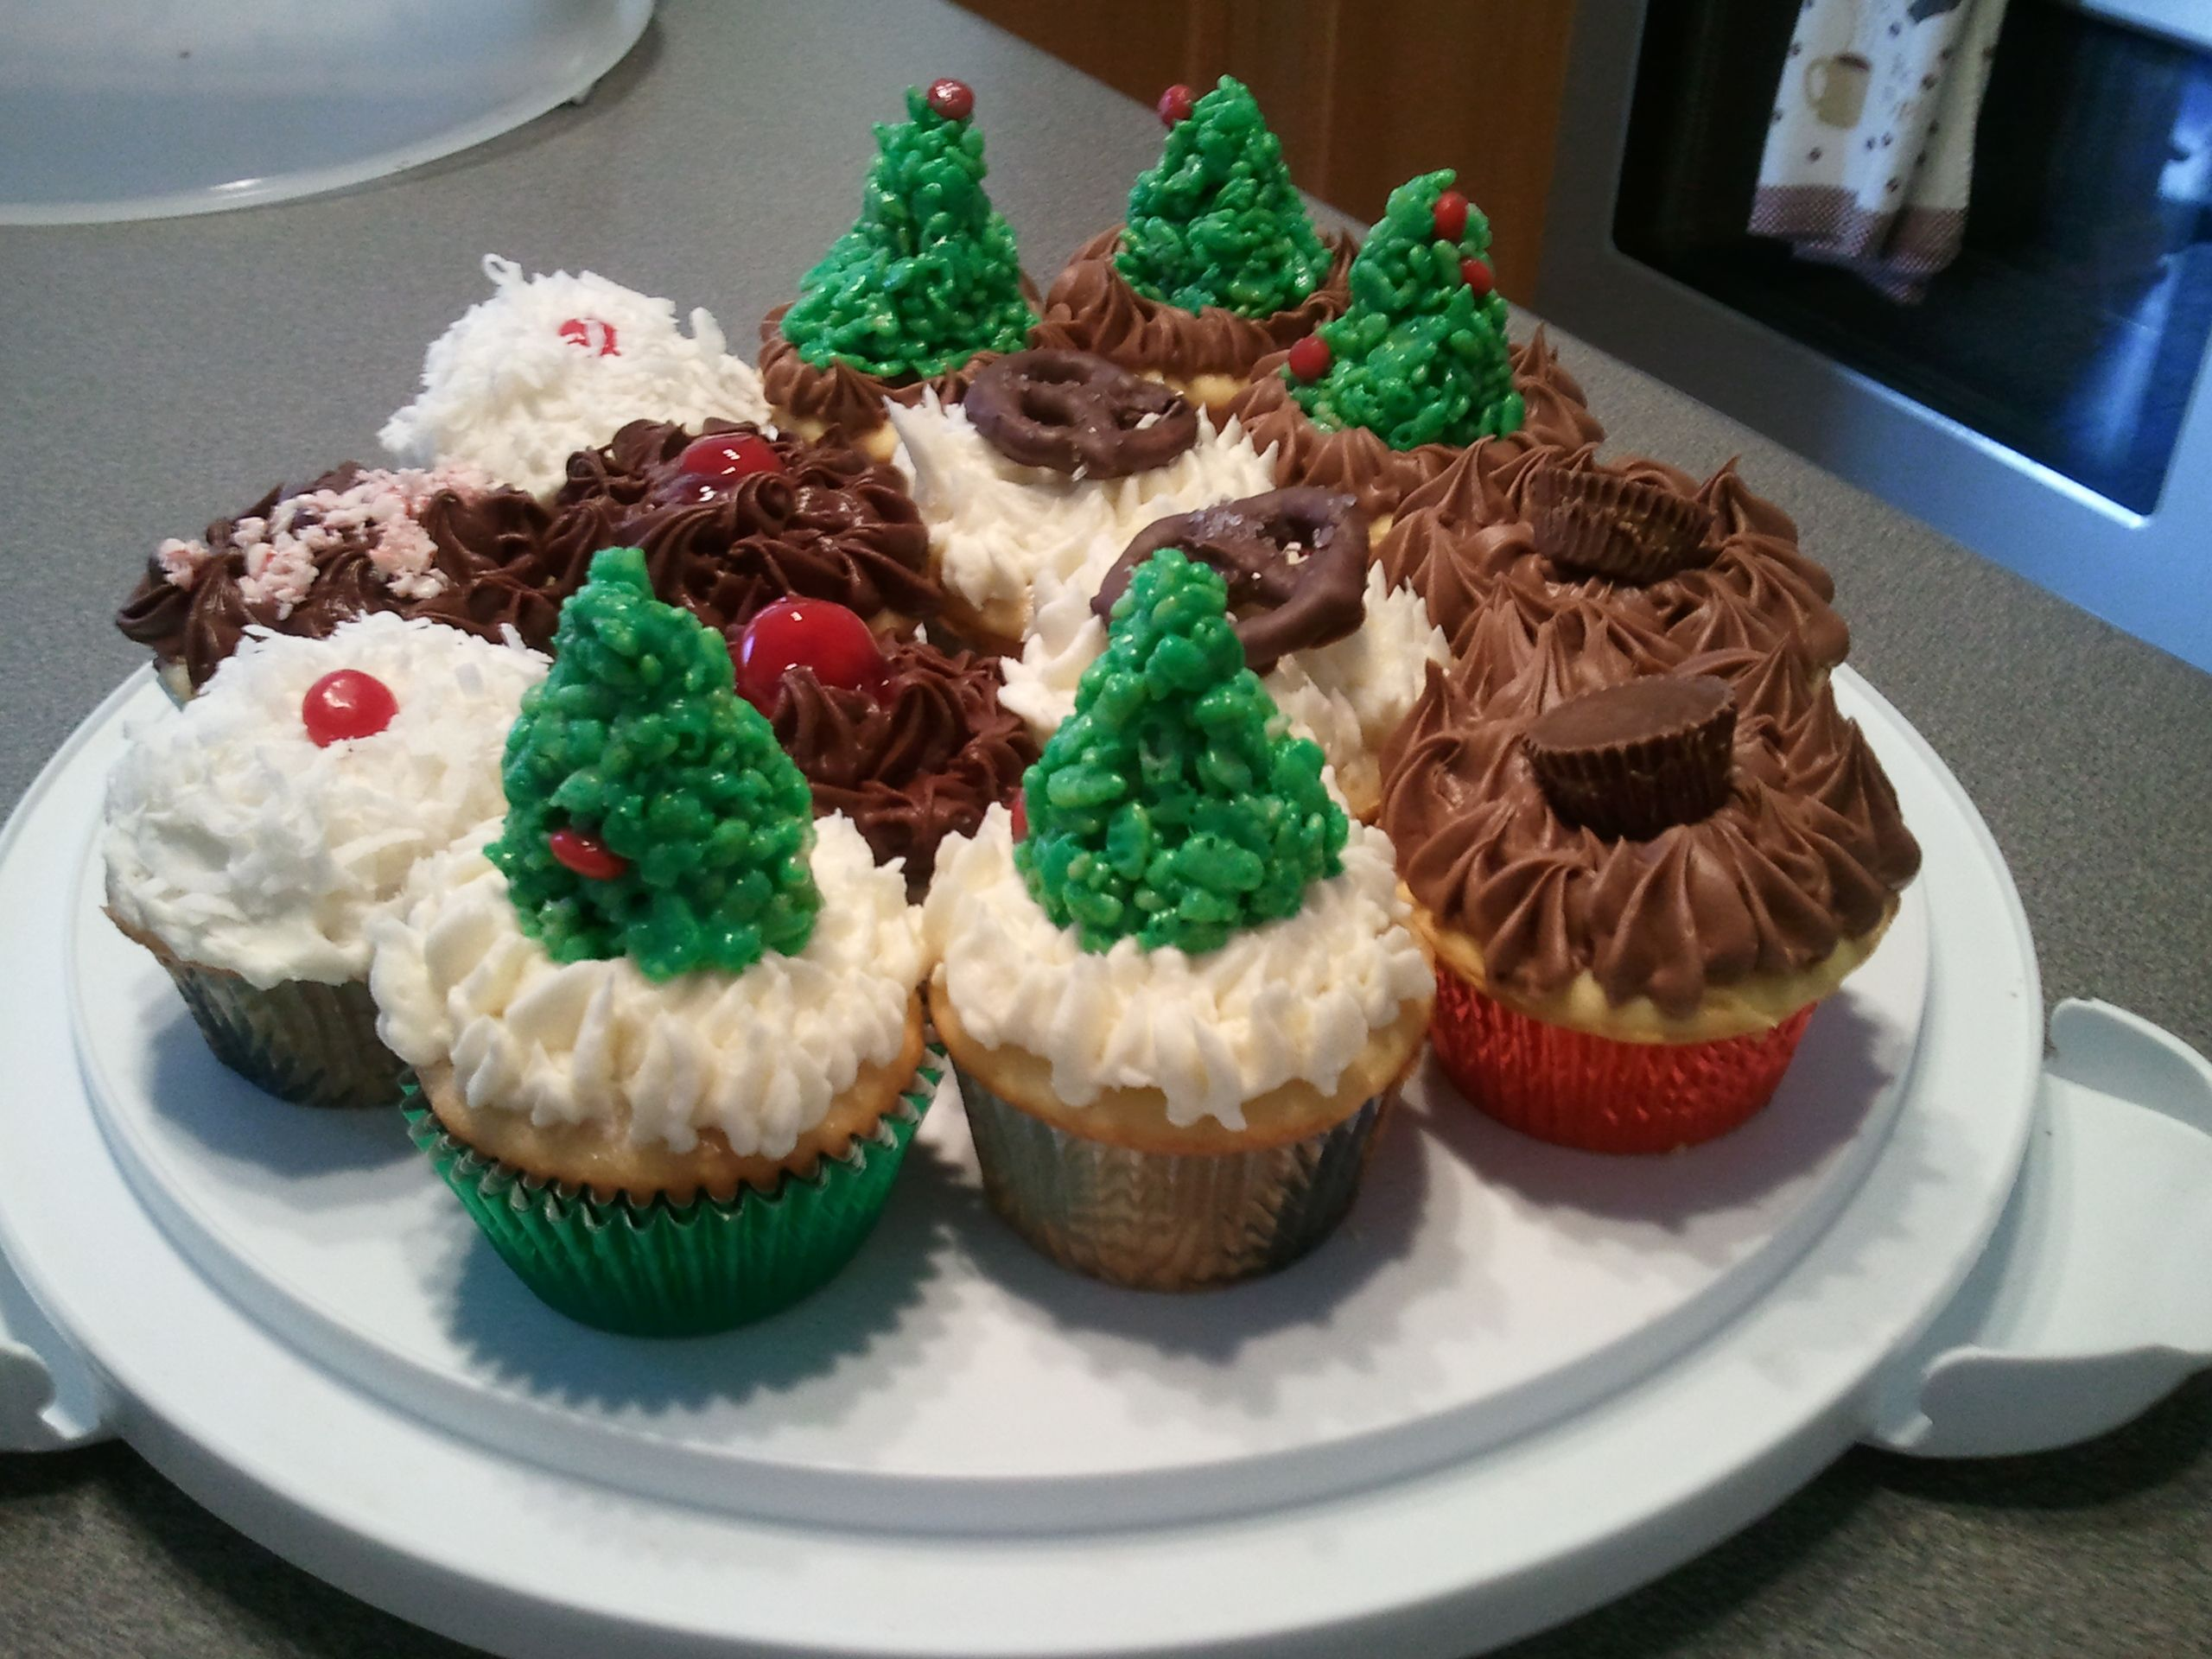 Christmas Cupcakes - The trees were made of Rice Krispy Treats